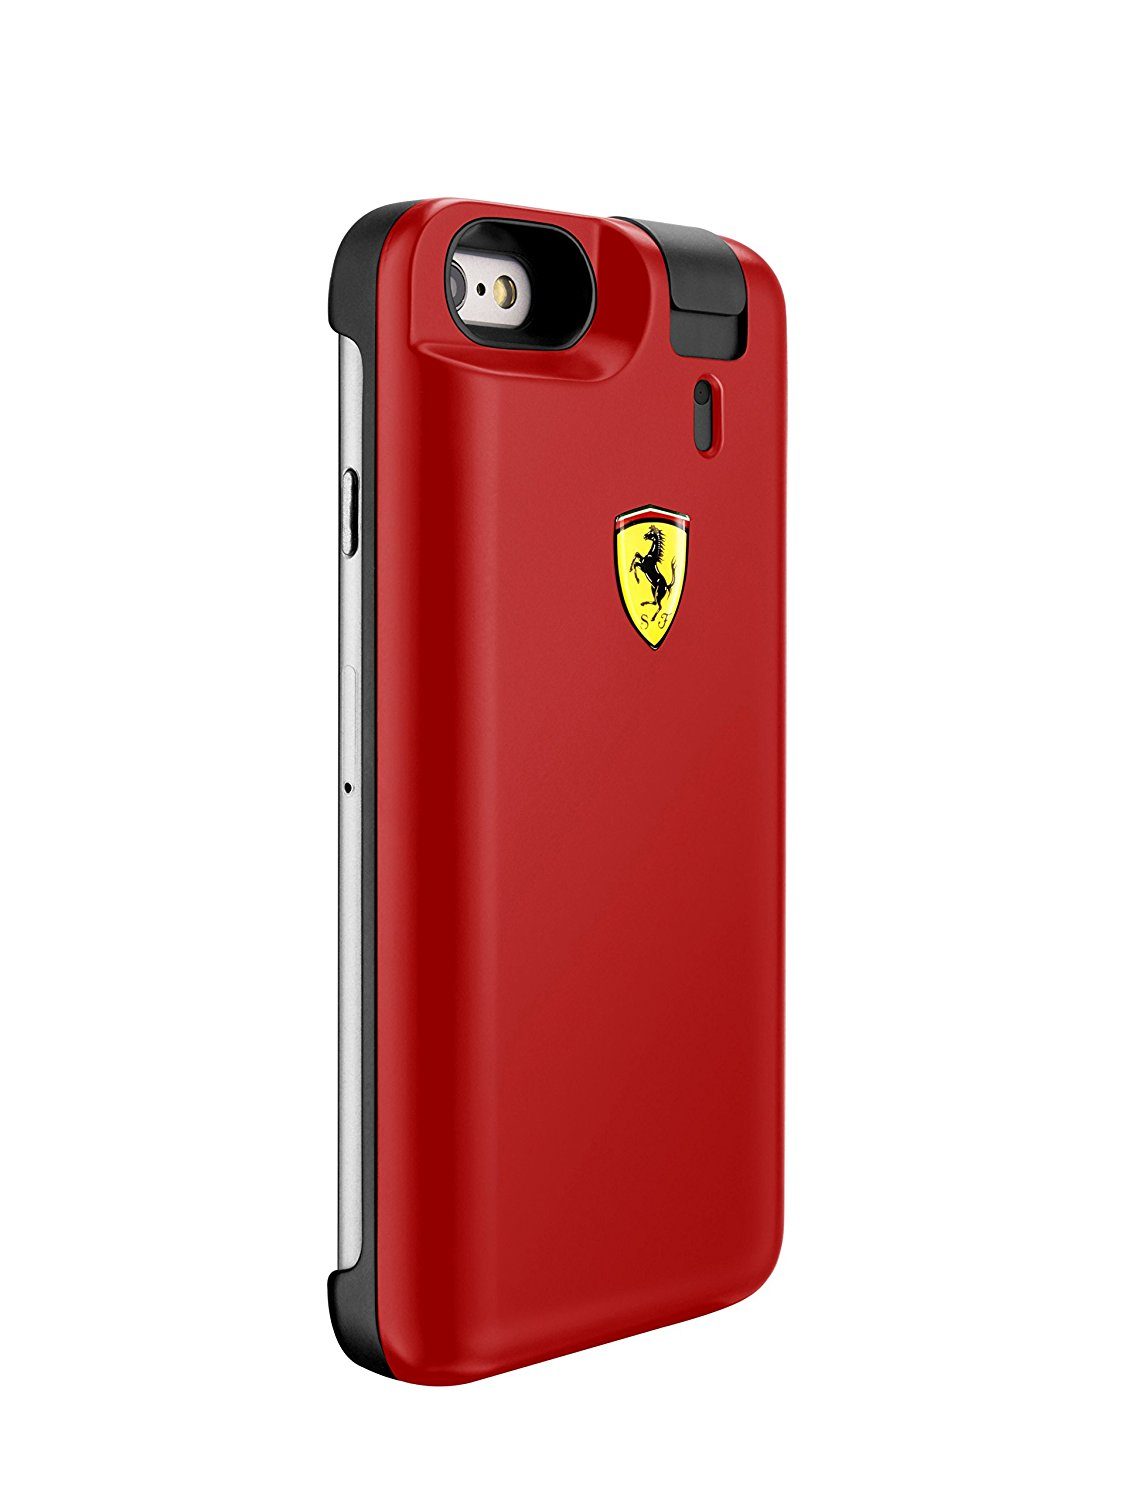 FERRARI SCUDERIA FERRARI RED COVER IPHONE 6/6S E PROFUMO 2 x 25ml